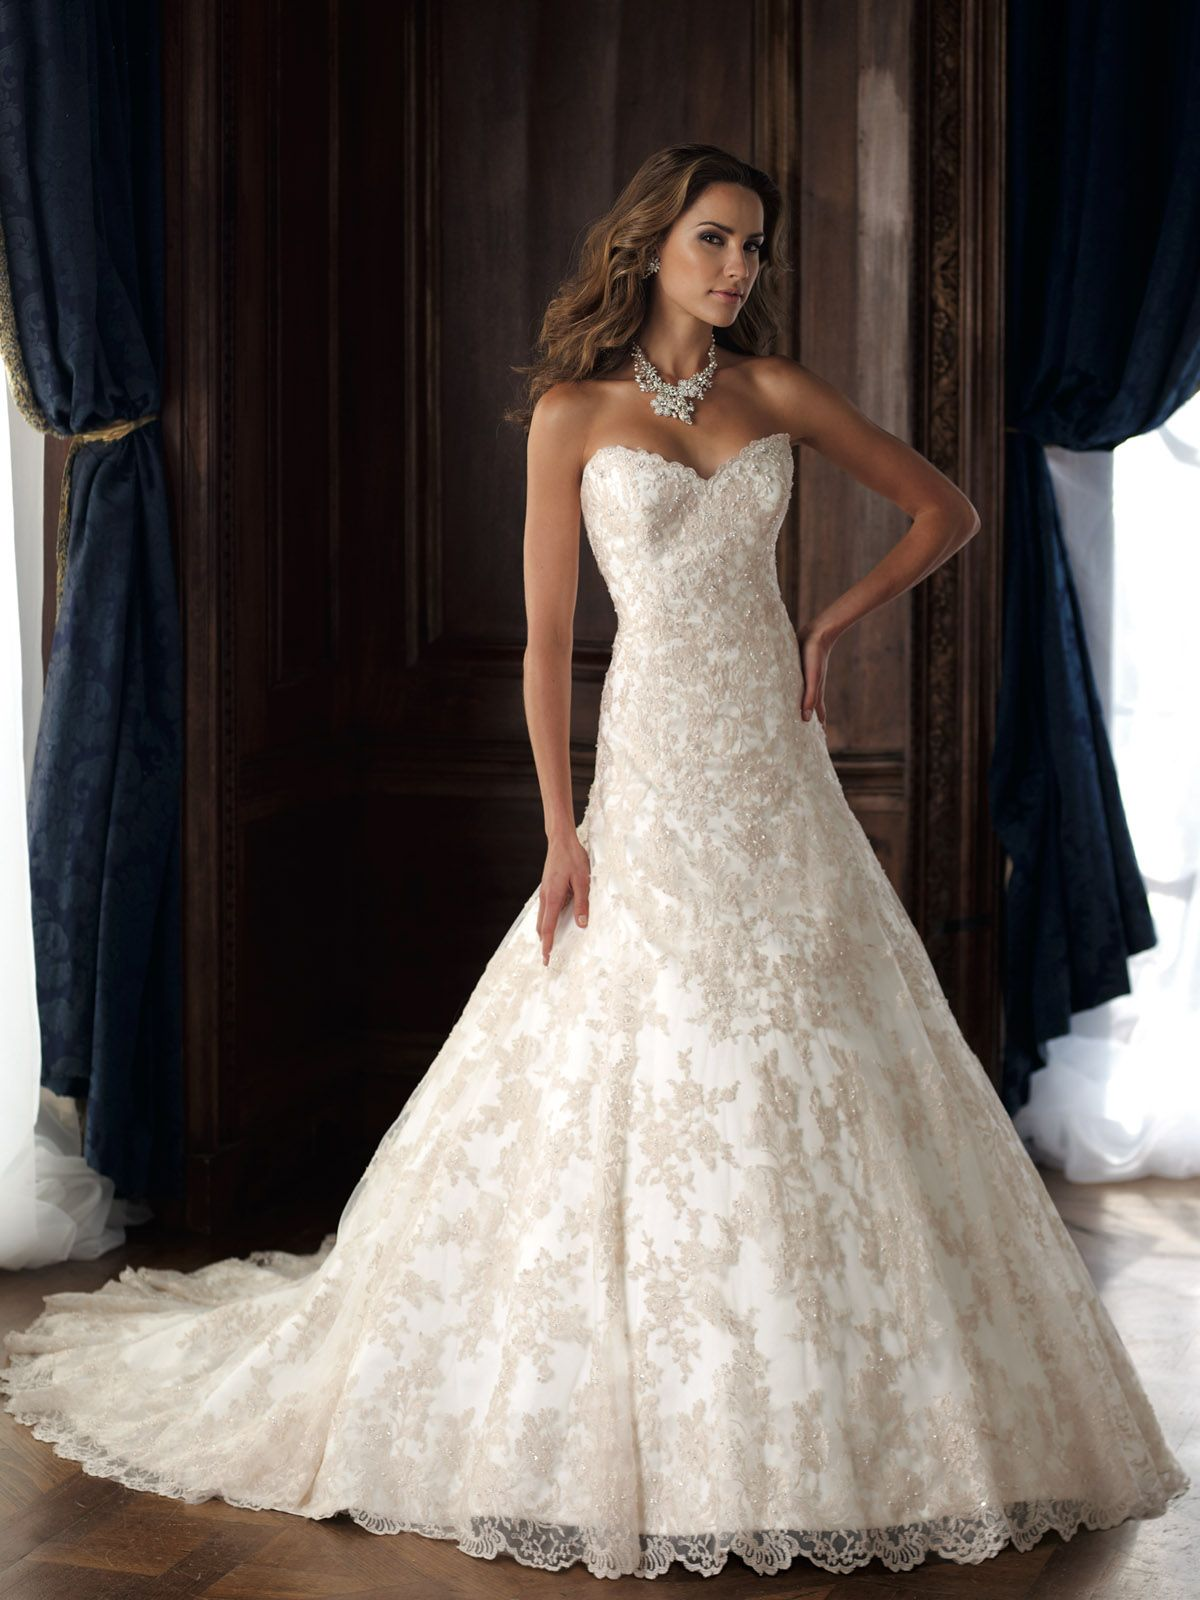 Wedding Dresses 2013 Collection Strapless Allover Delicately Hand Beaded Lace And Tulle A